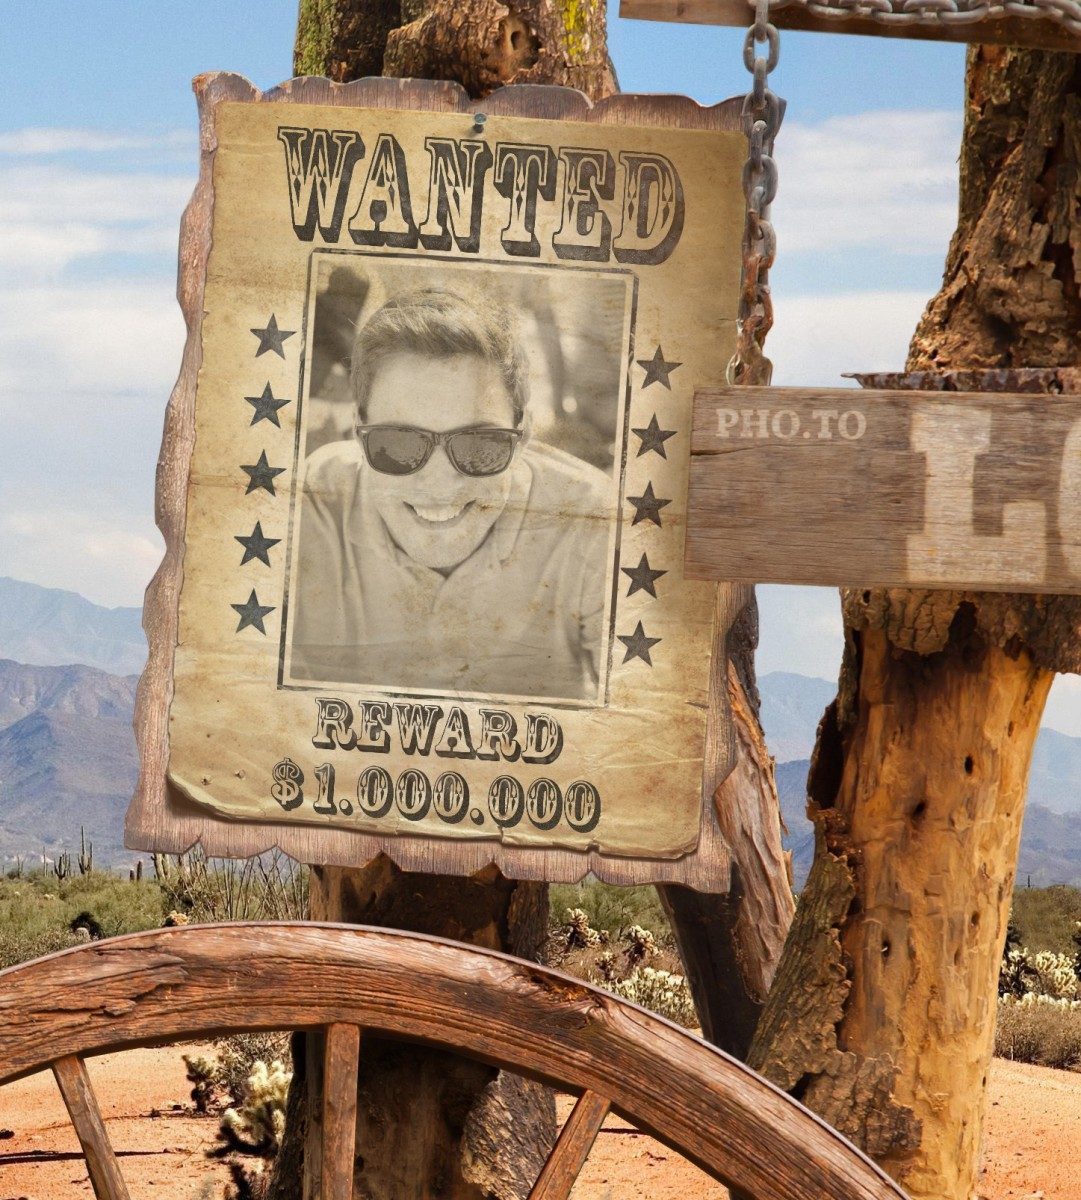 Create your own Wanted poster with Wanted poster generator – Wanted Posters Templates